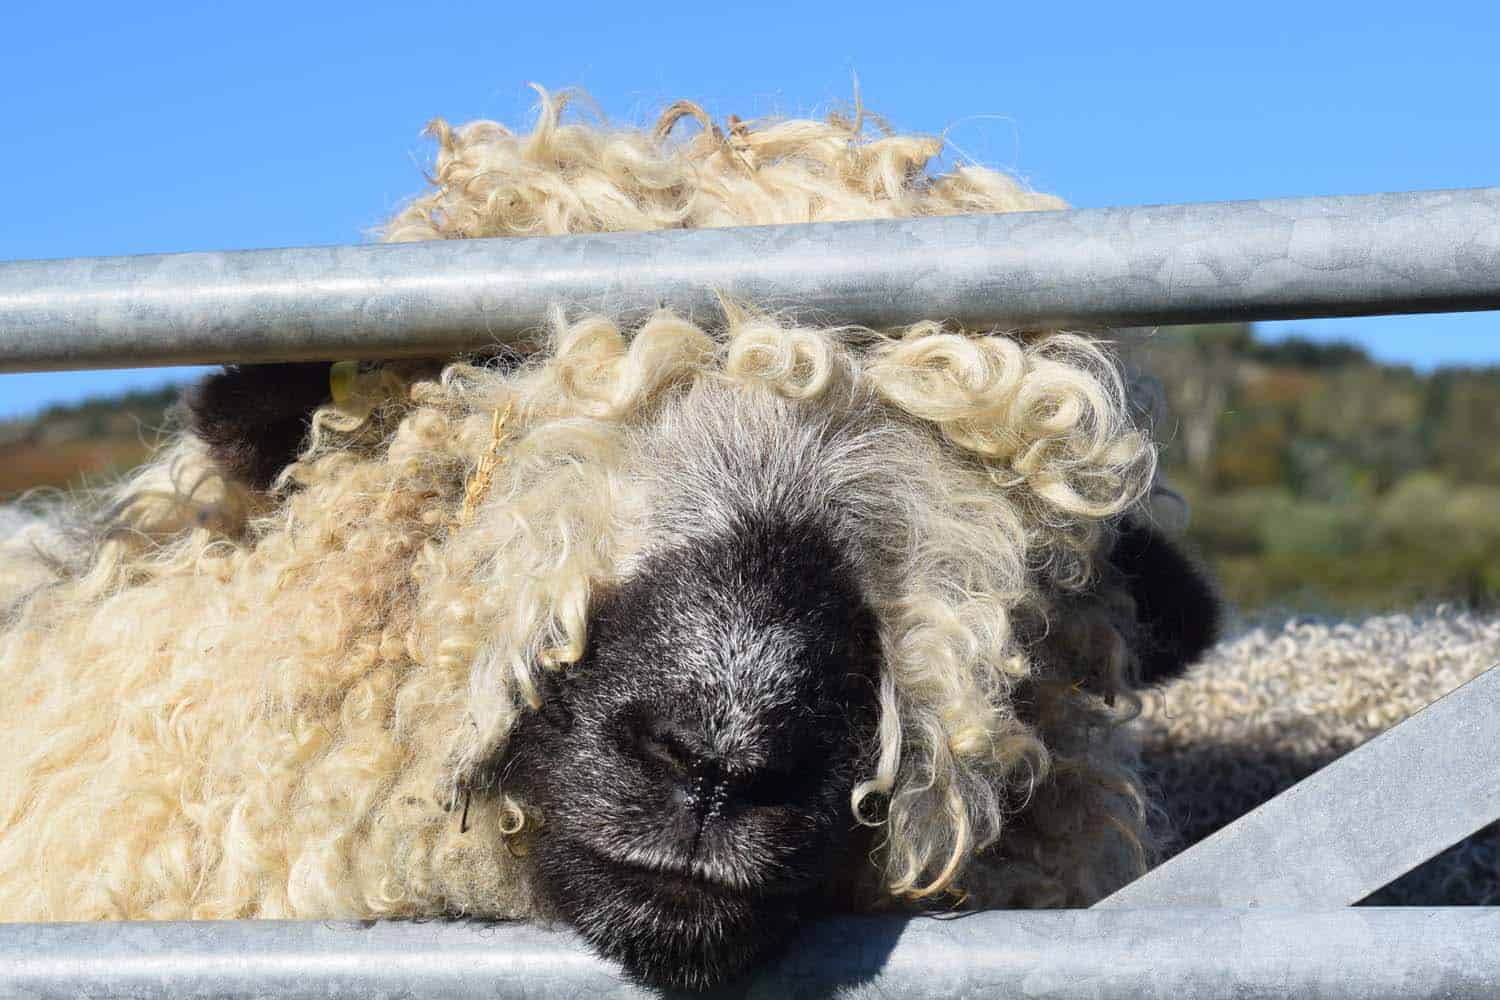 Nora valais blacknose greyface dartmoor pet sheep cuddle bear sheep patchworksheep crueltyfree felt rugs bear sheep